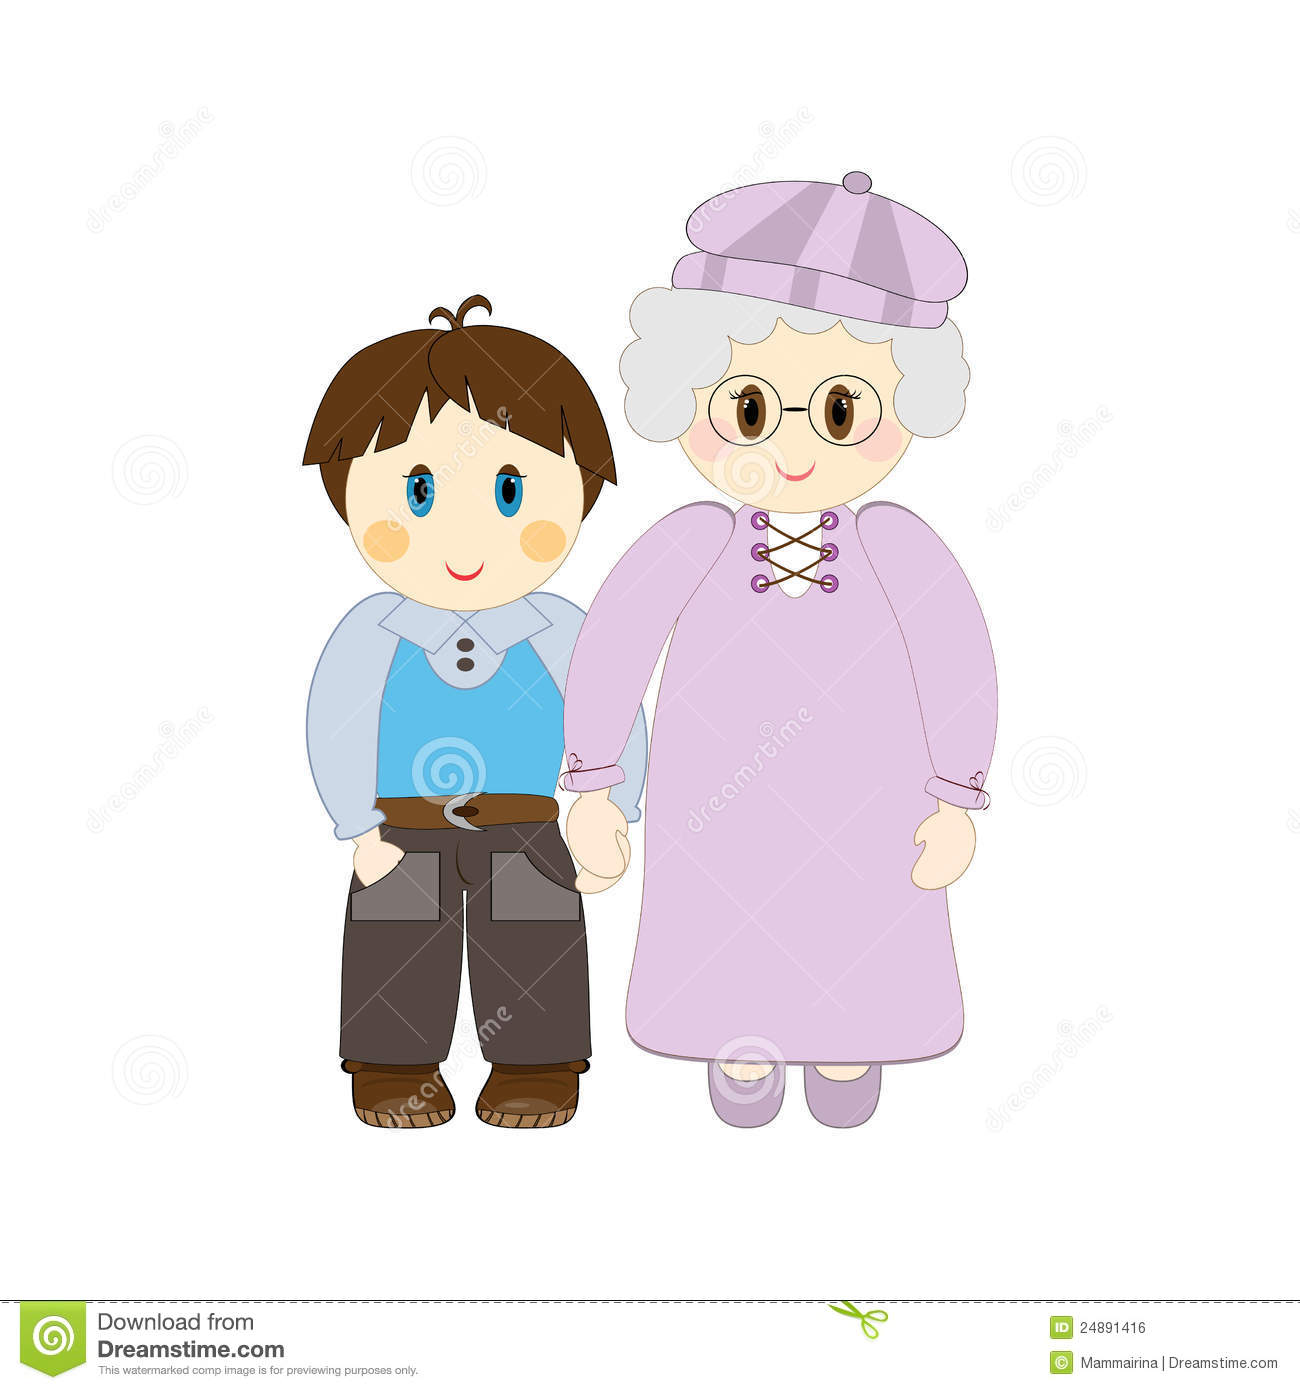 Grandma And Grandson Royalty Free Stock Image   Image  24891416